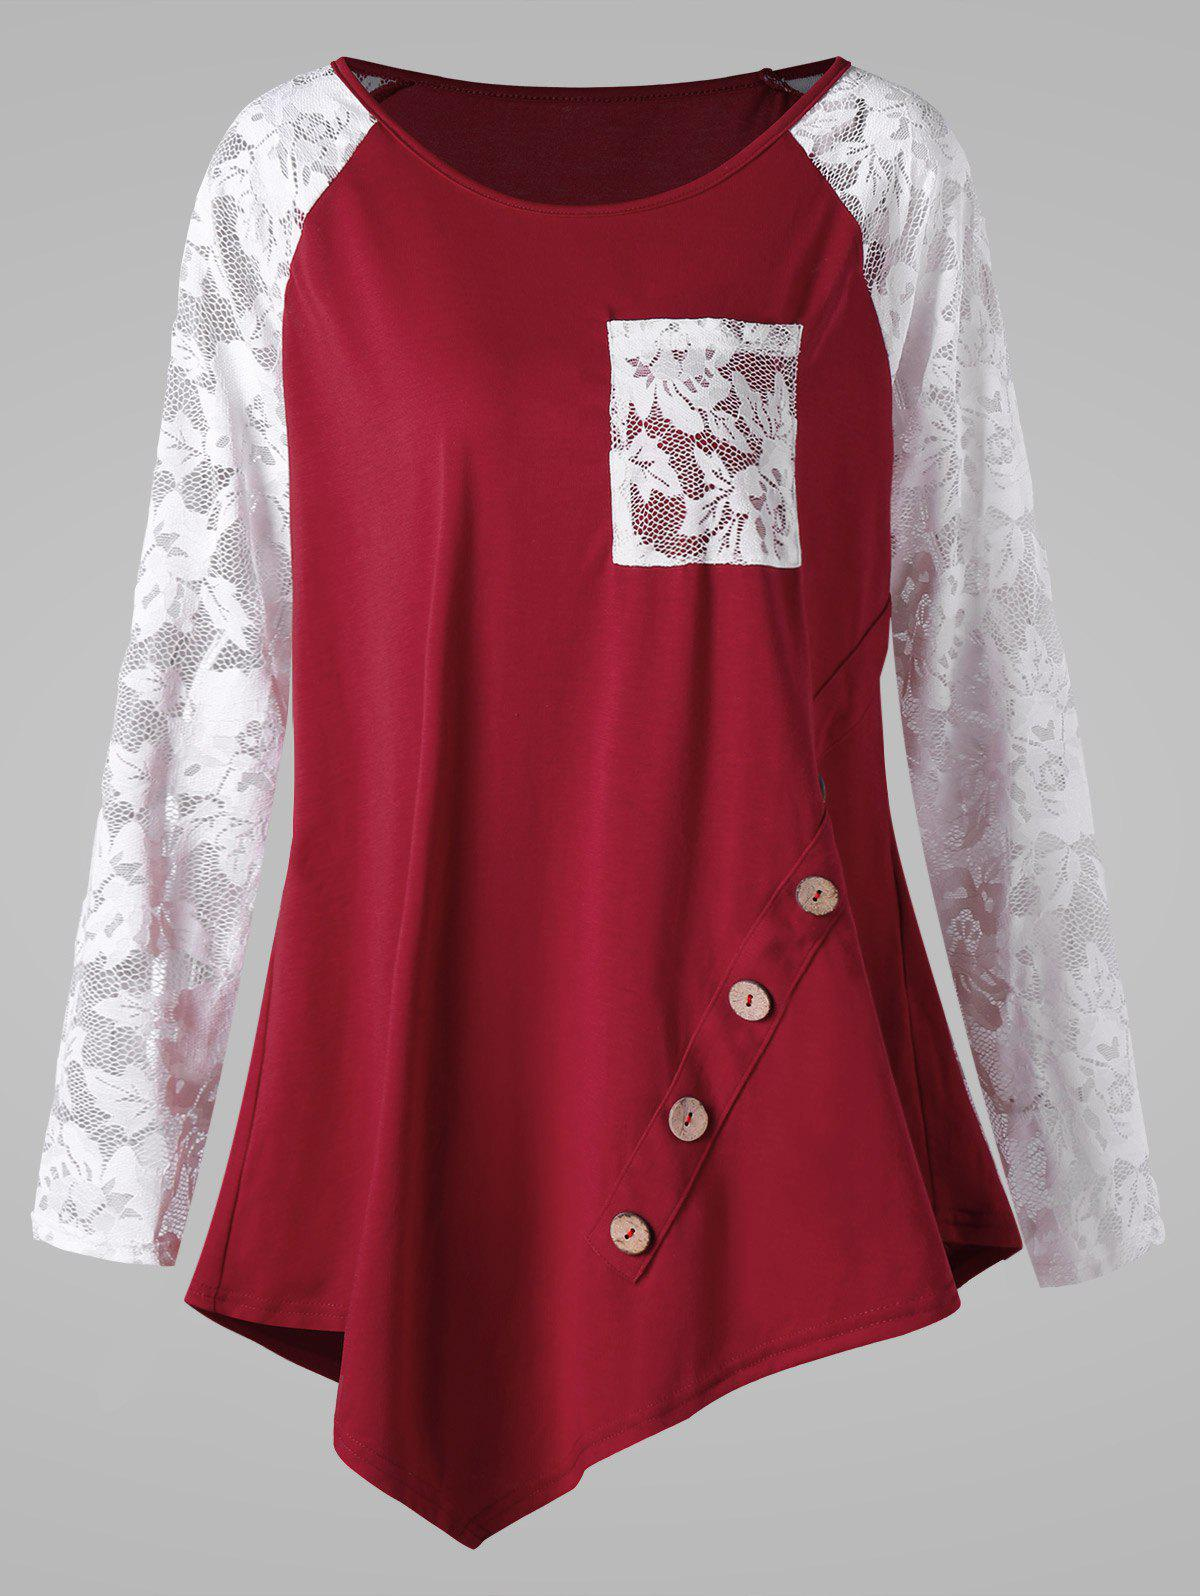 Plus Size Raglan Sleeve Pocket Lace Panel Asymmetric T-shirtWOMEN<br><br>Size: 2XL; Color: RED AND WHITE; Material: Cotton,Lace,Polyester; Shirt Length: Long; Sleeve Length: Full; Collar: Scoop Neck; Style: Casual; Season: Fall,Spring; Embellishment: Button,Lace,Panel; Pattern Type: Others; Weight: 0.2500kg; Package Contents: 1 x T-shirt;